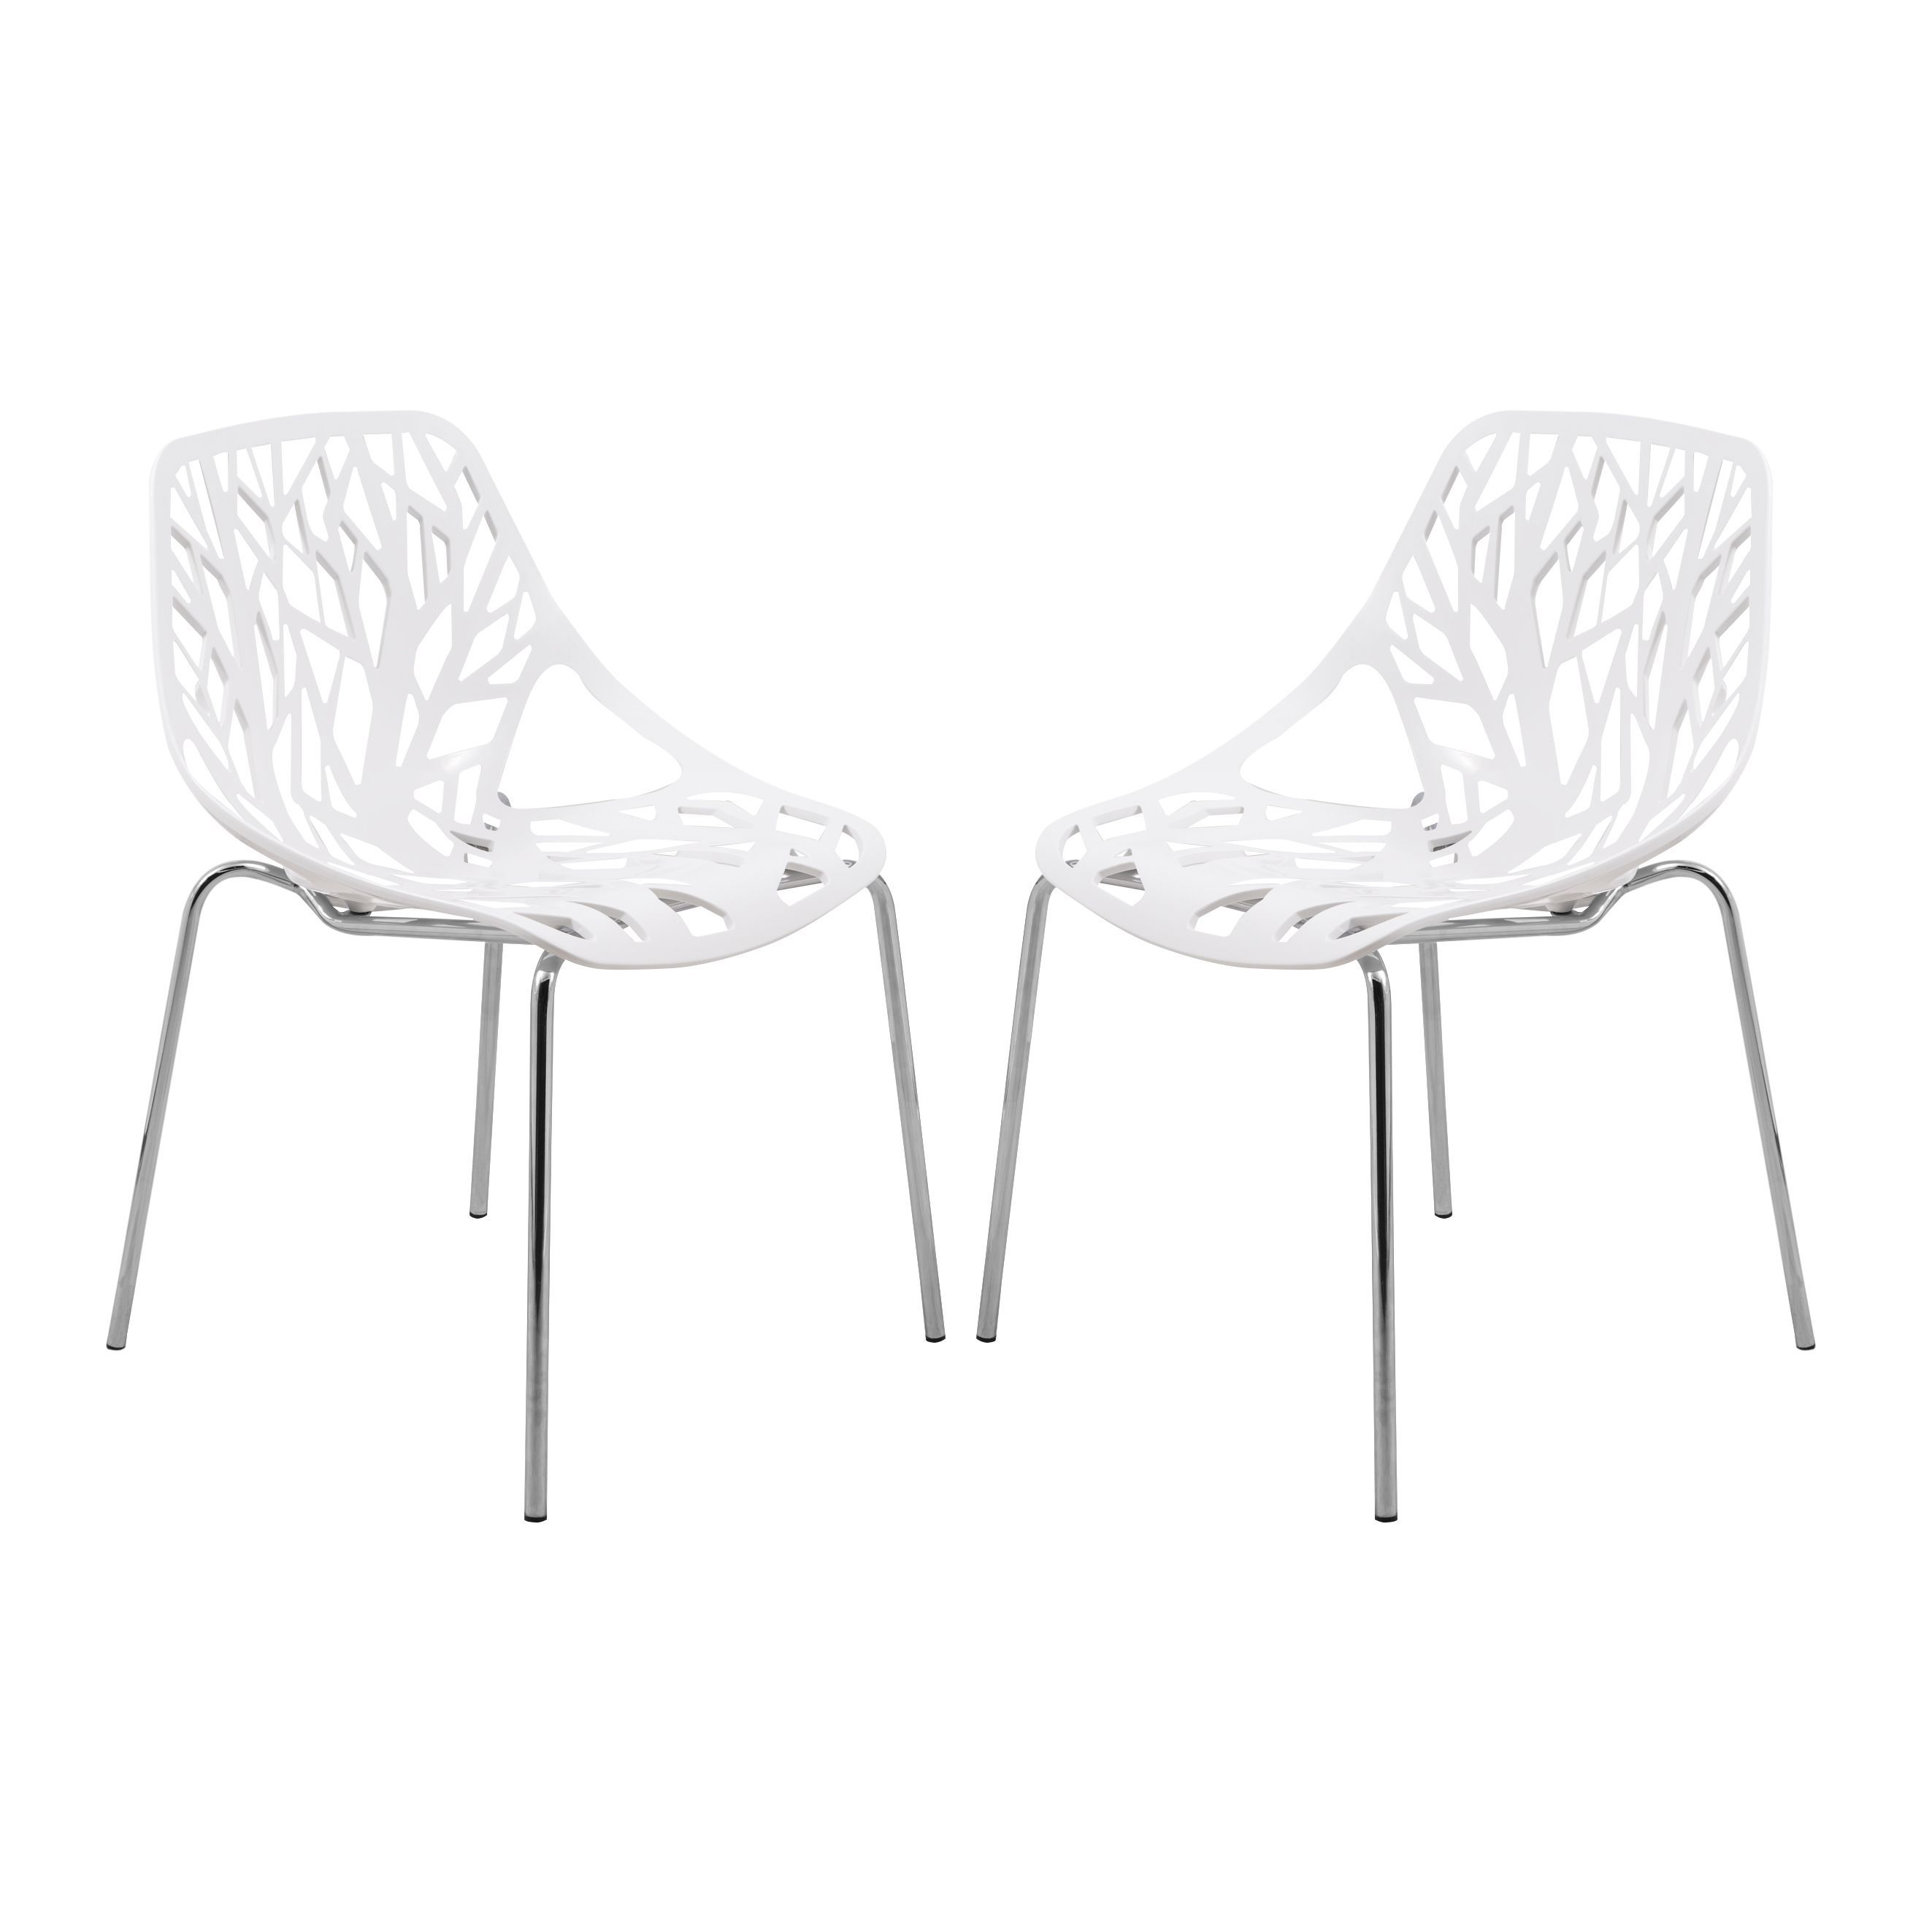 Black Dining Room Chairs With Chrome Legs Pink Kids Chair Leisuremod Asbury Modern White Set Of 2 Plastic